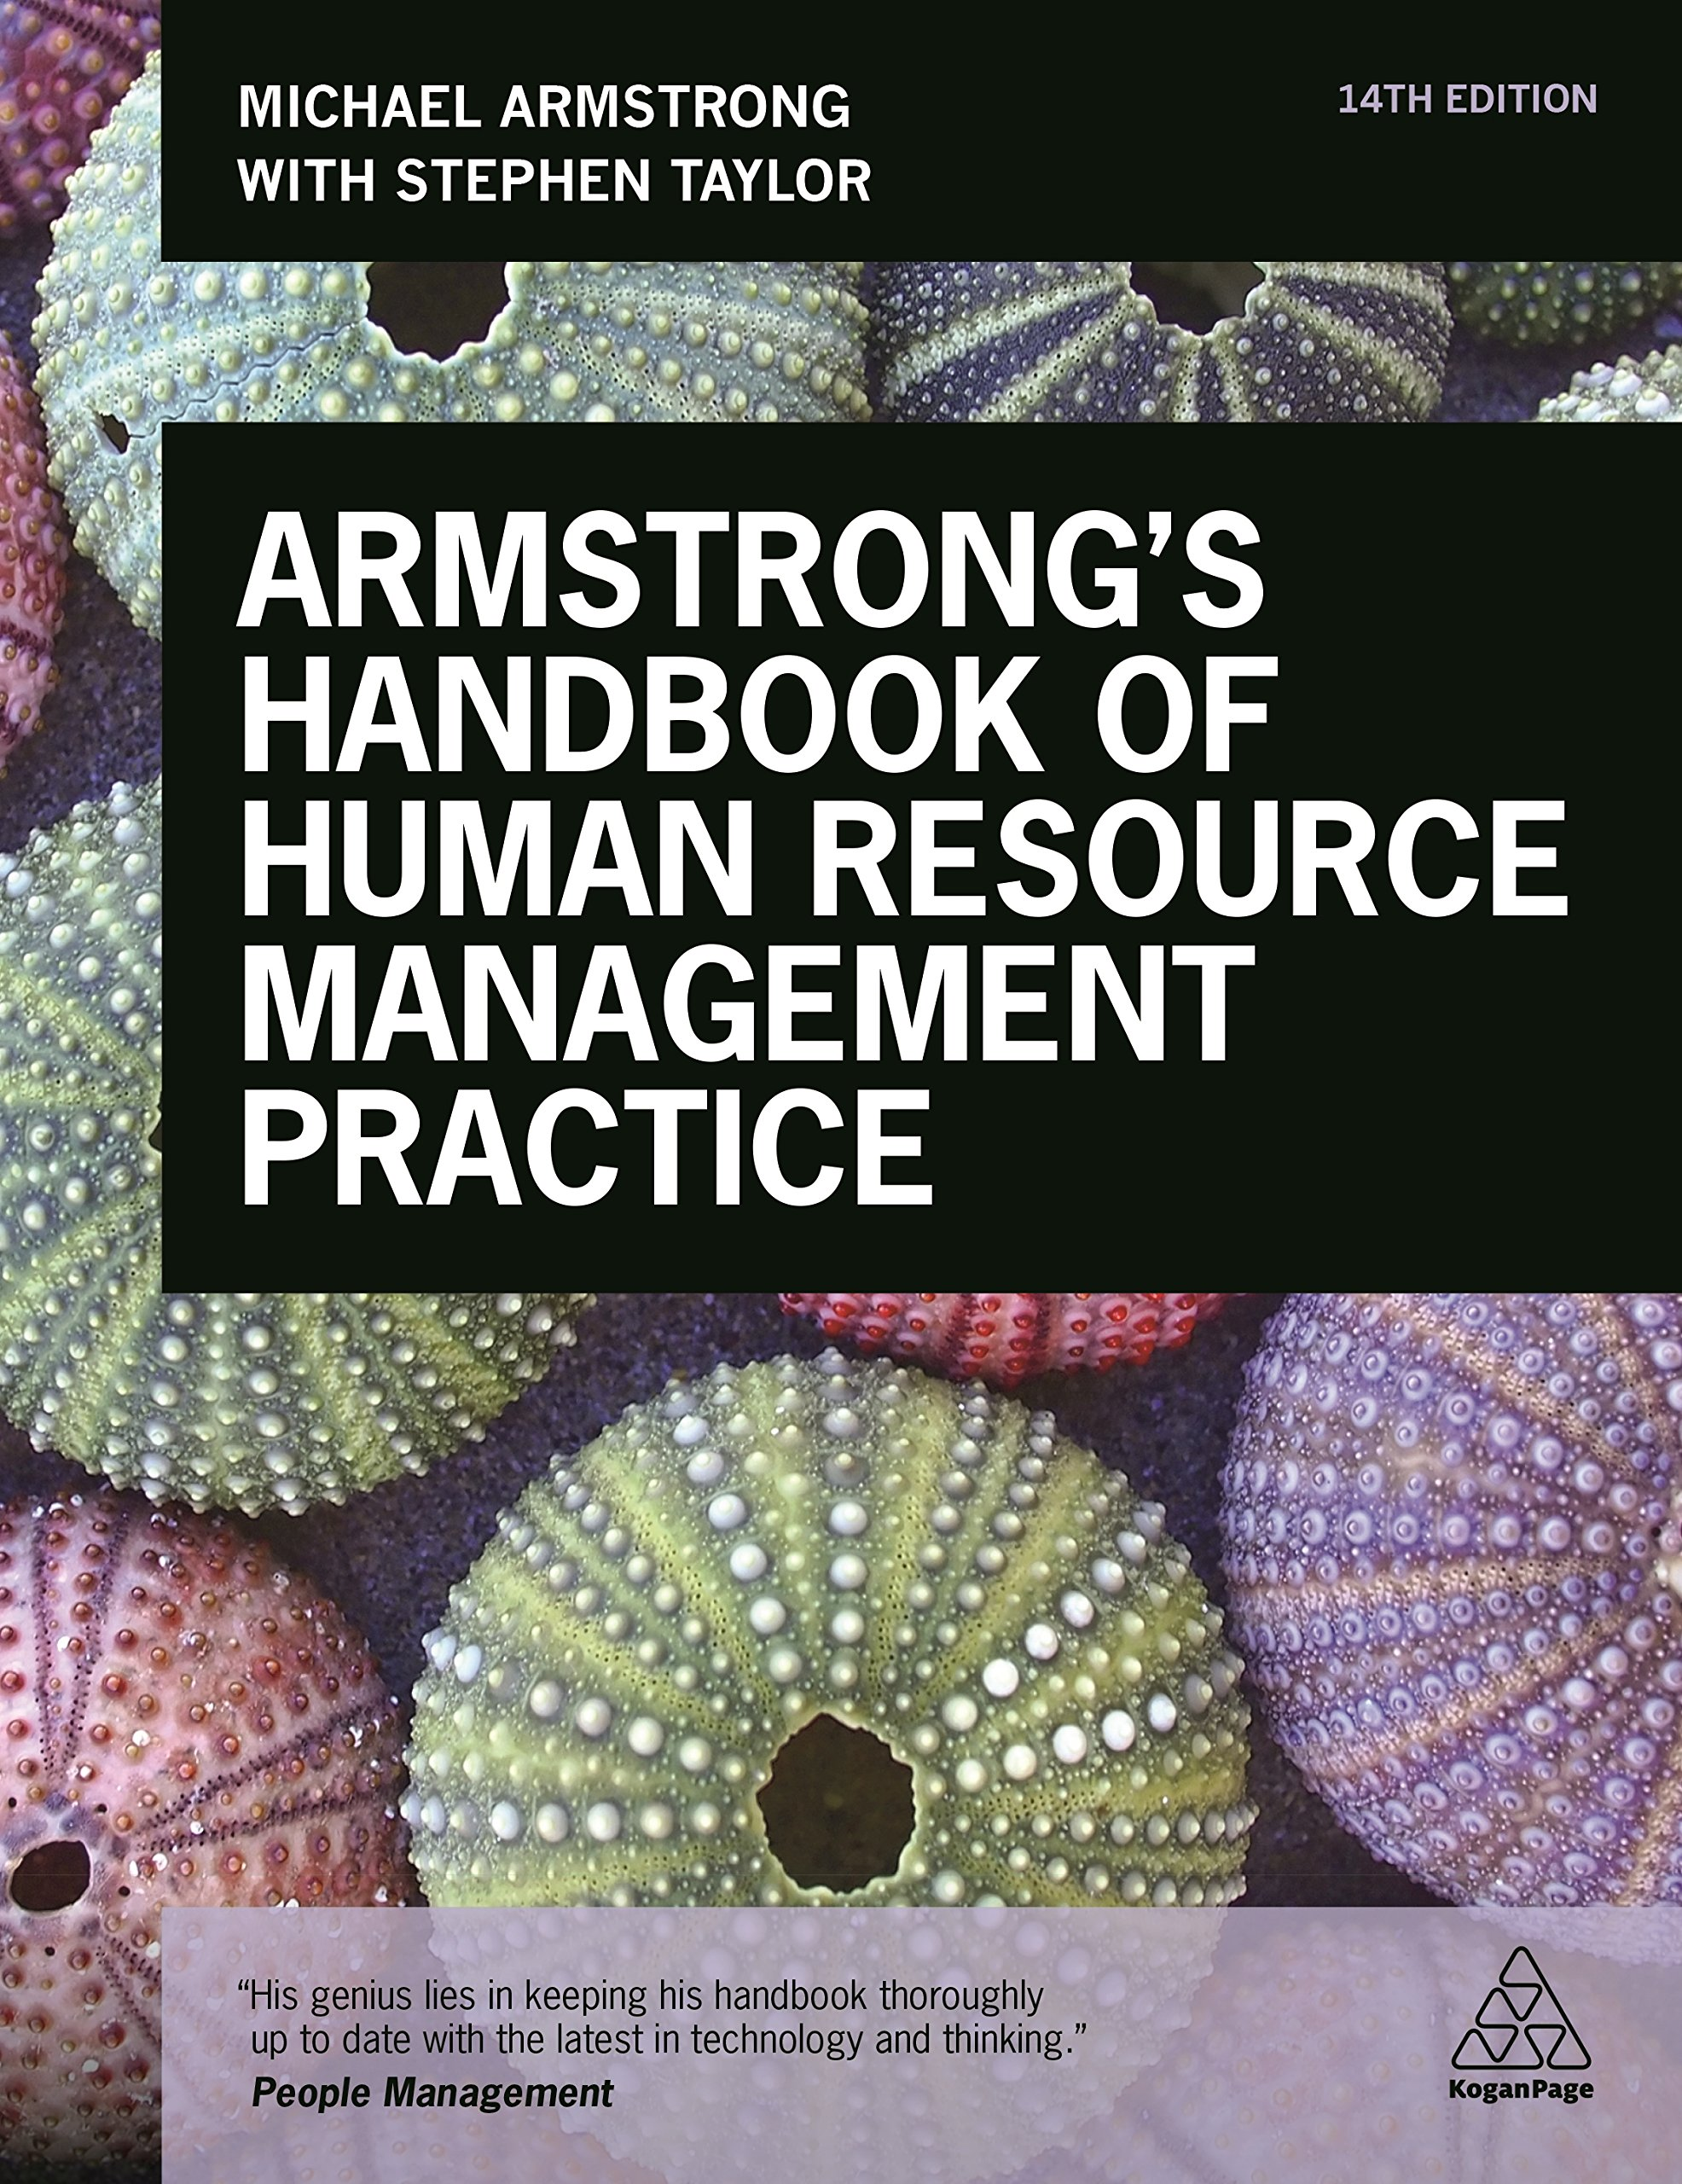 Armstrong's Handbook of Human Resource Management Practice: Amazon.co.uk:  Michael Armstrong, Stephen Taylor: 9780749474119: Books